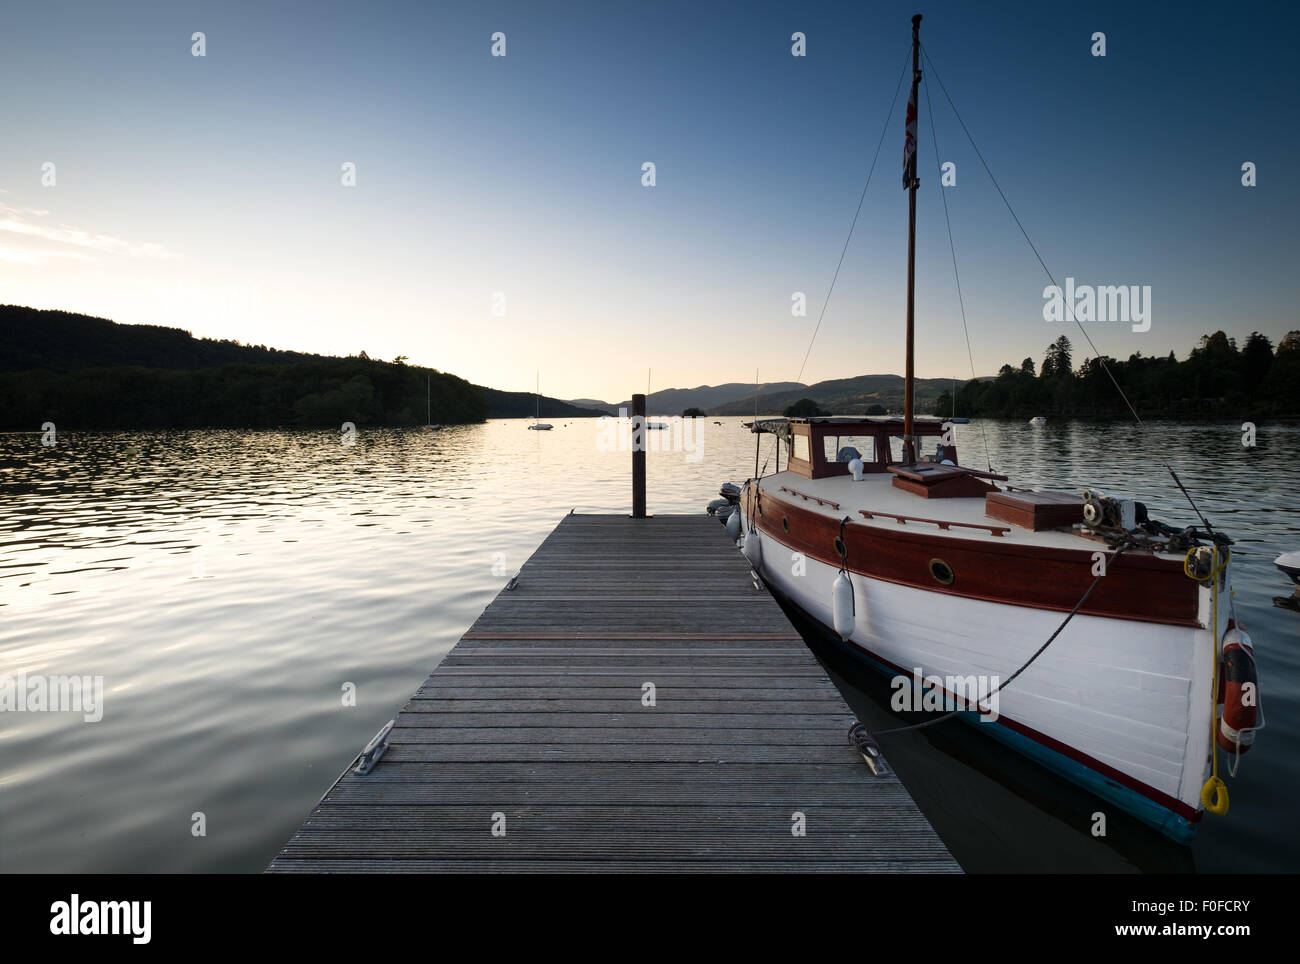 Lake Windermere pictured at dusk from Bowness-On-Windermere, Cumbria, UK - Stock Image